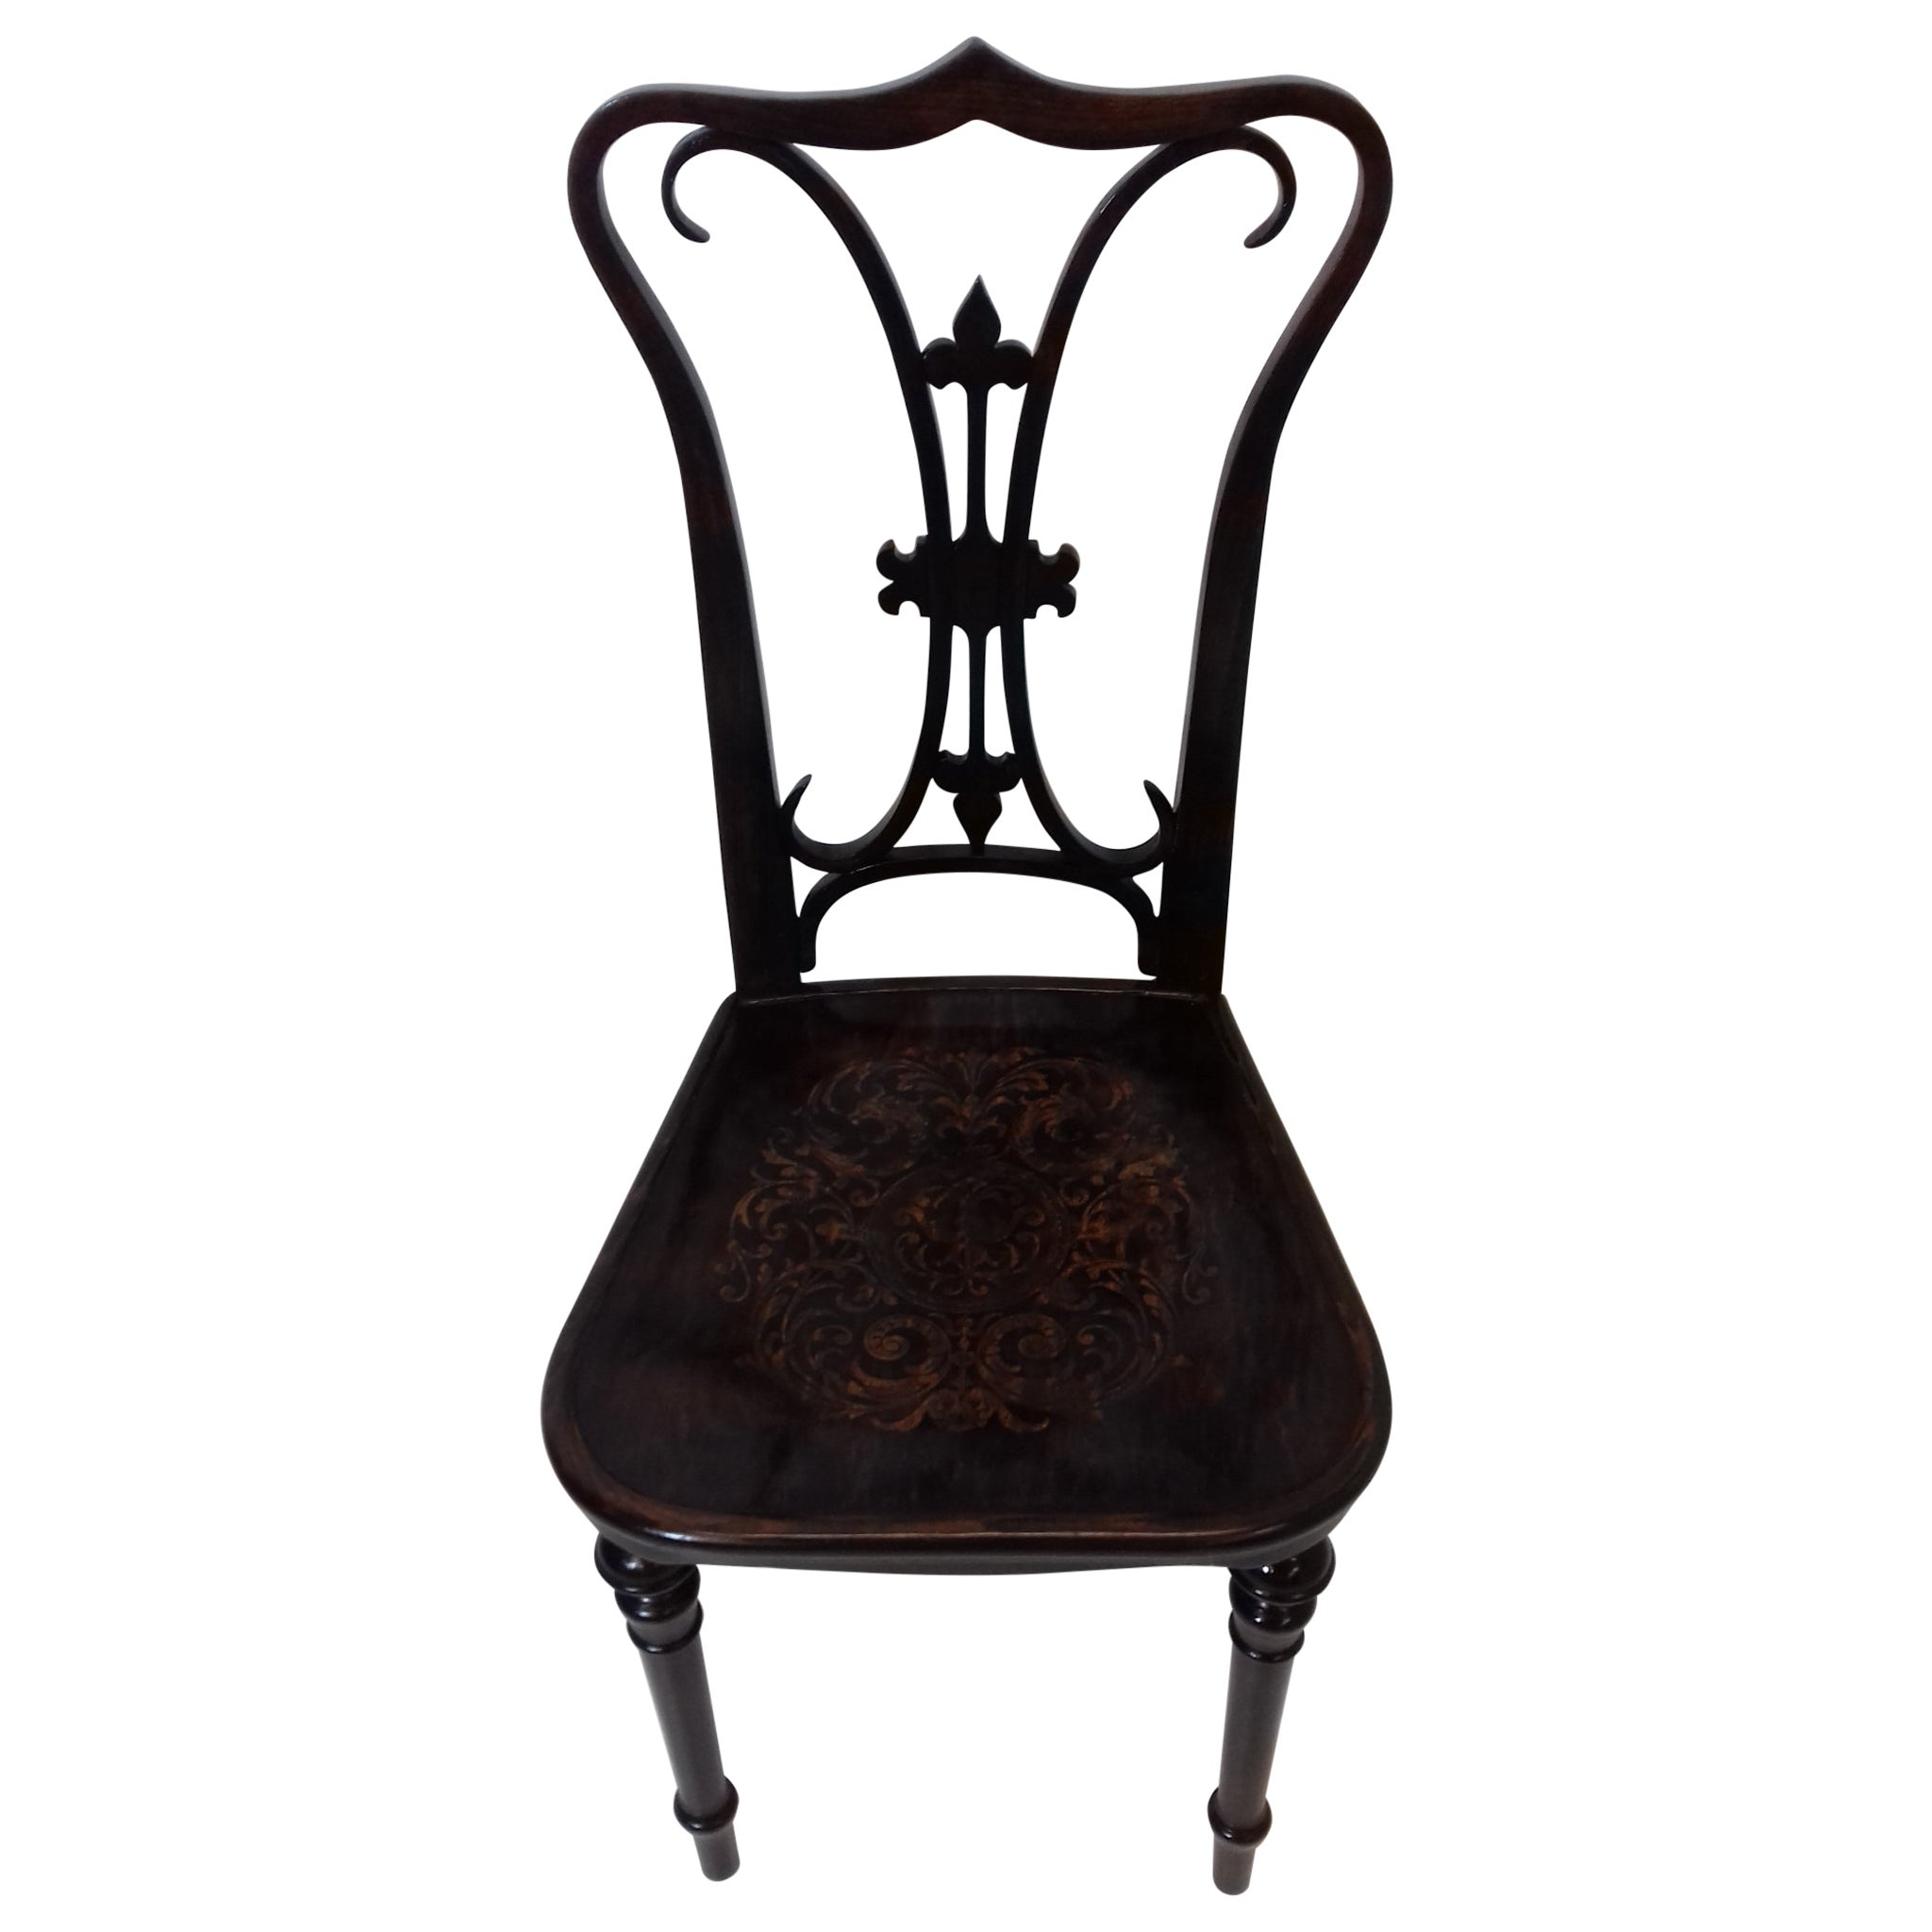 Dining Chair/Thonet, 1880s